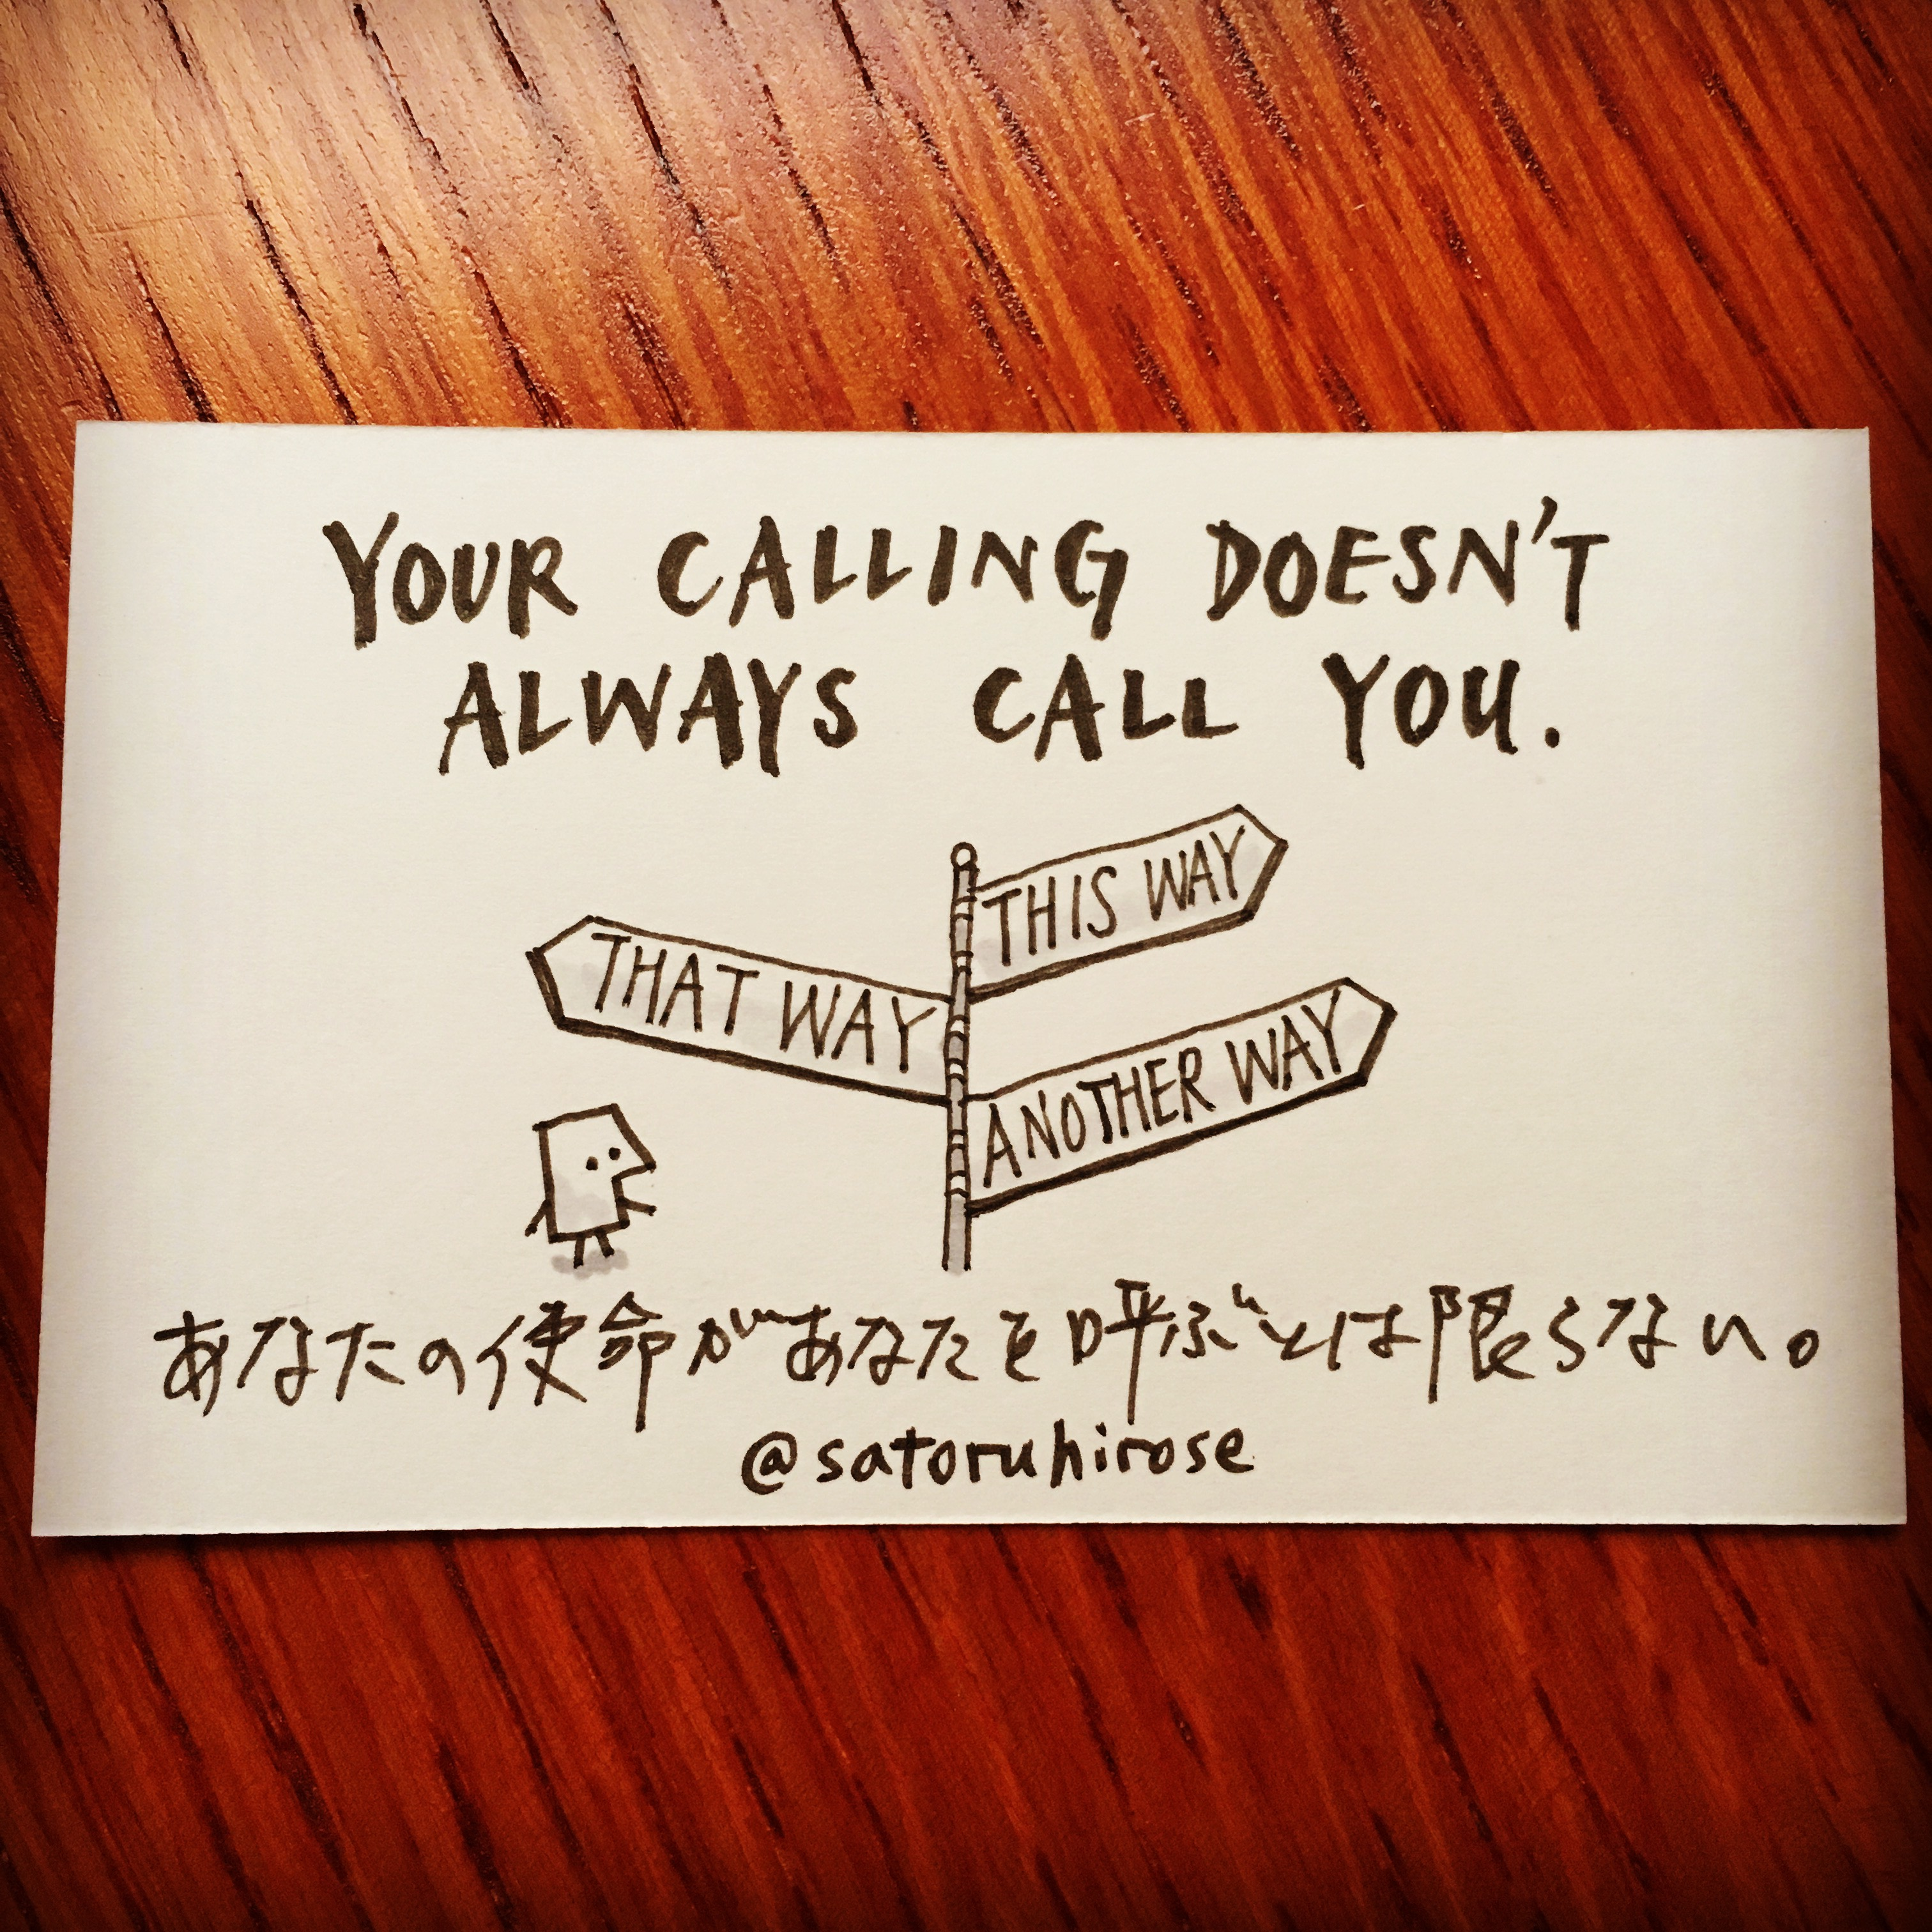 Your calling doesn't always call you.